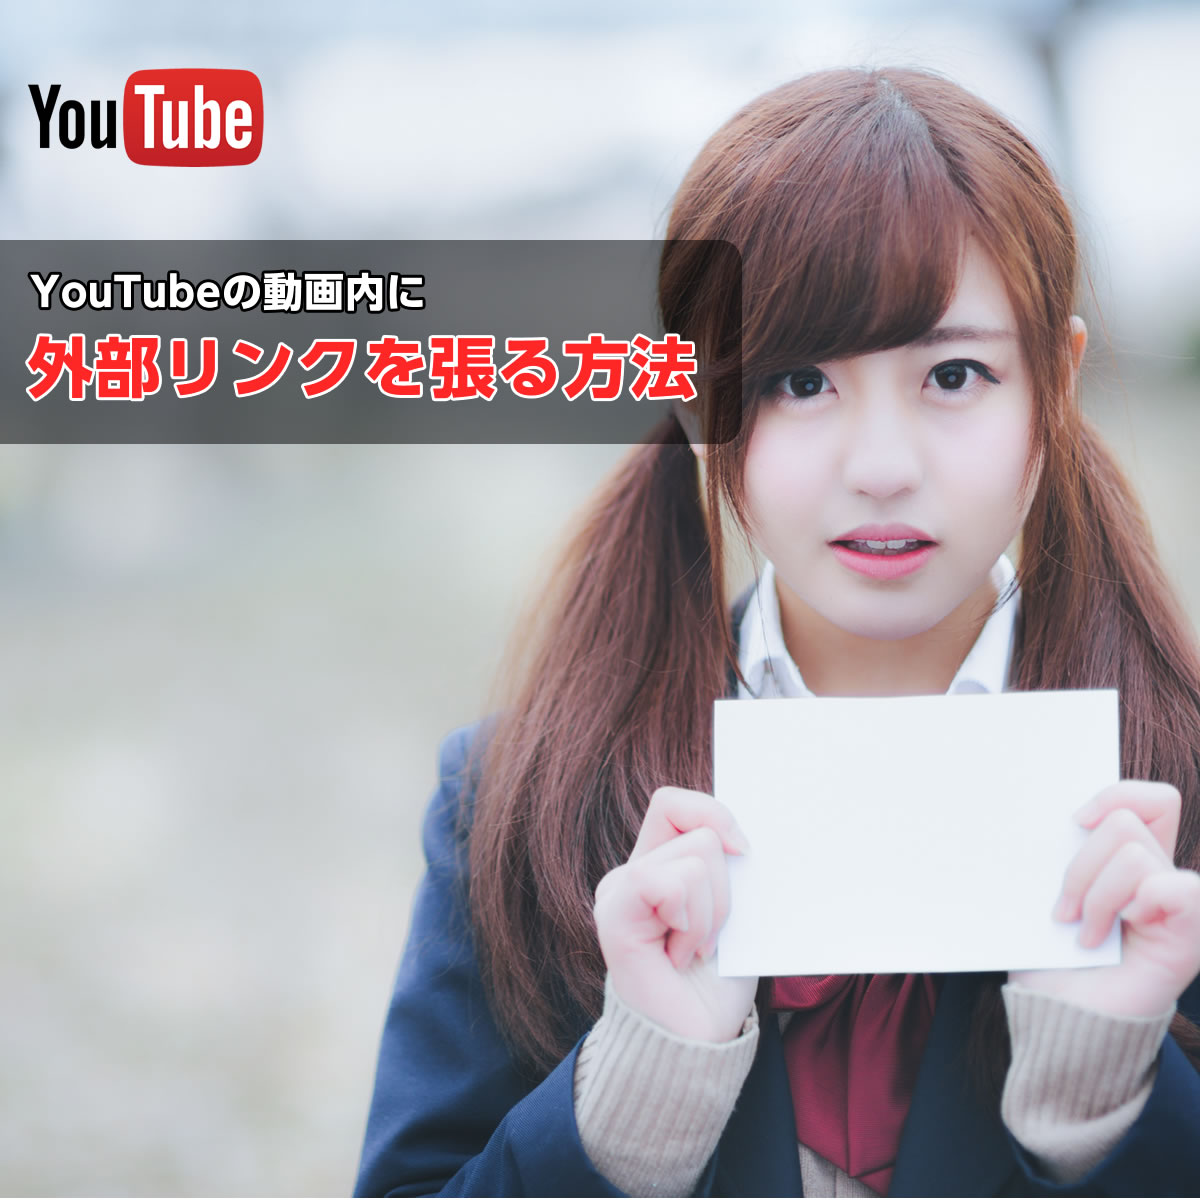 youtube-annotations-card001